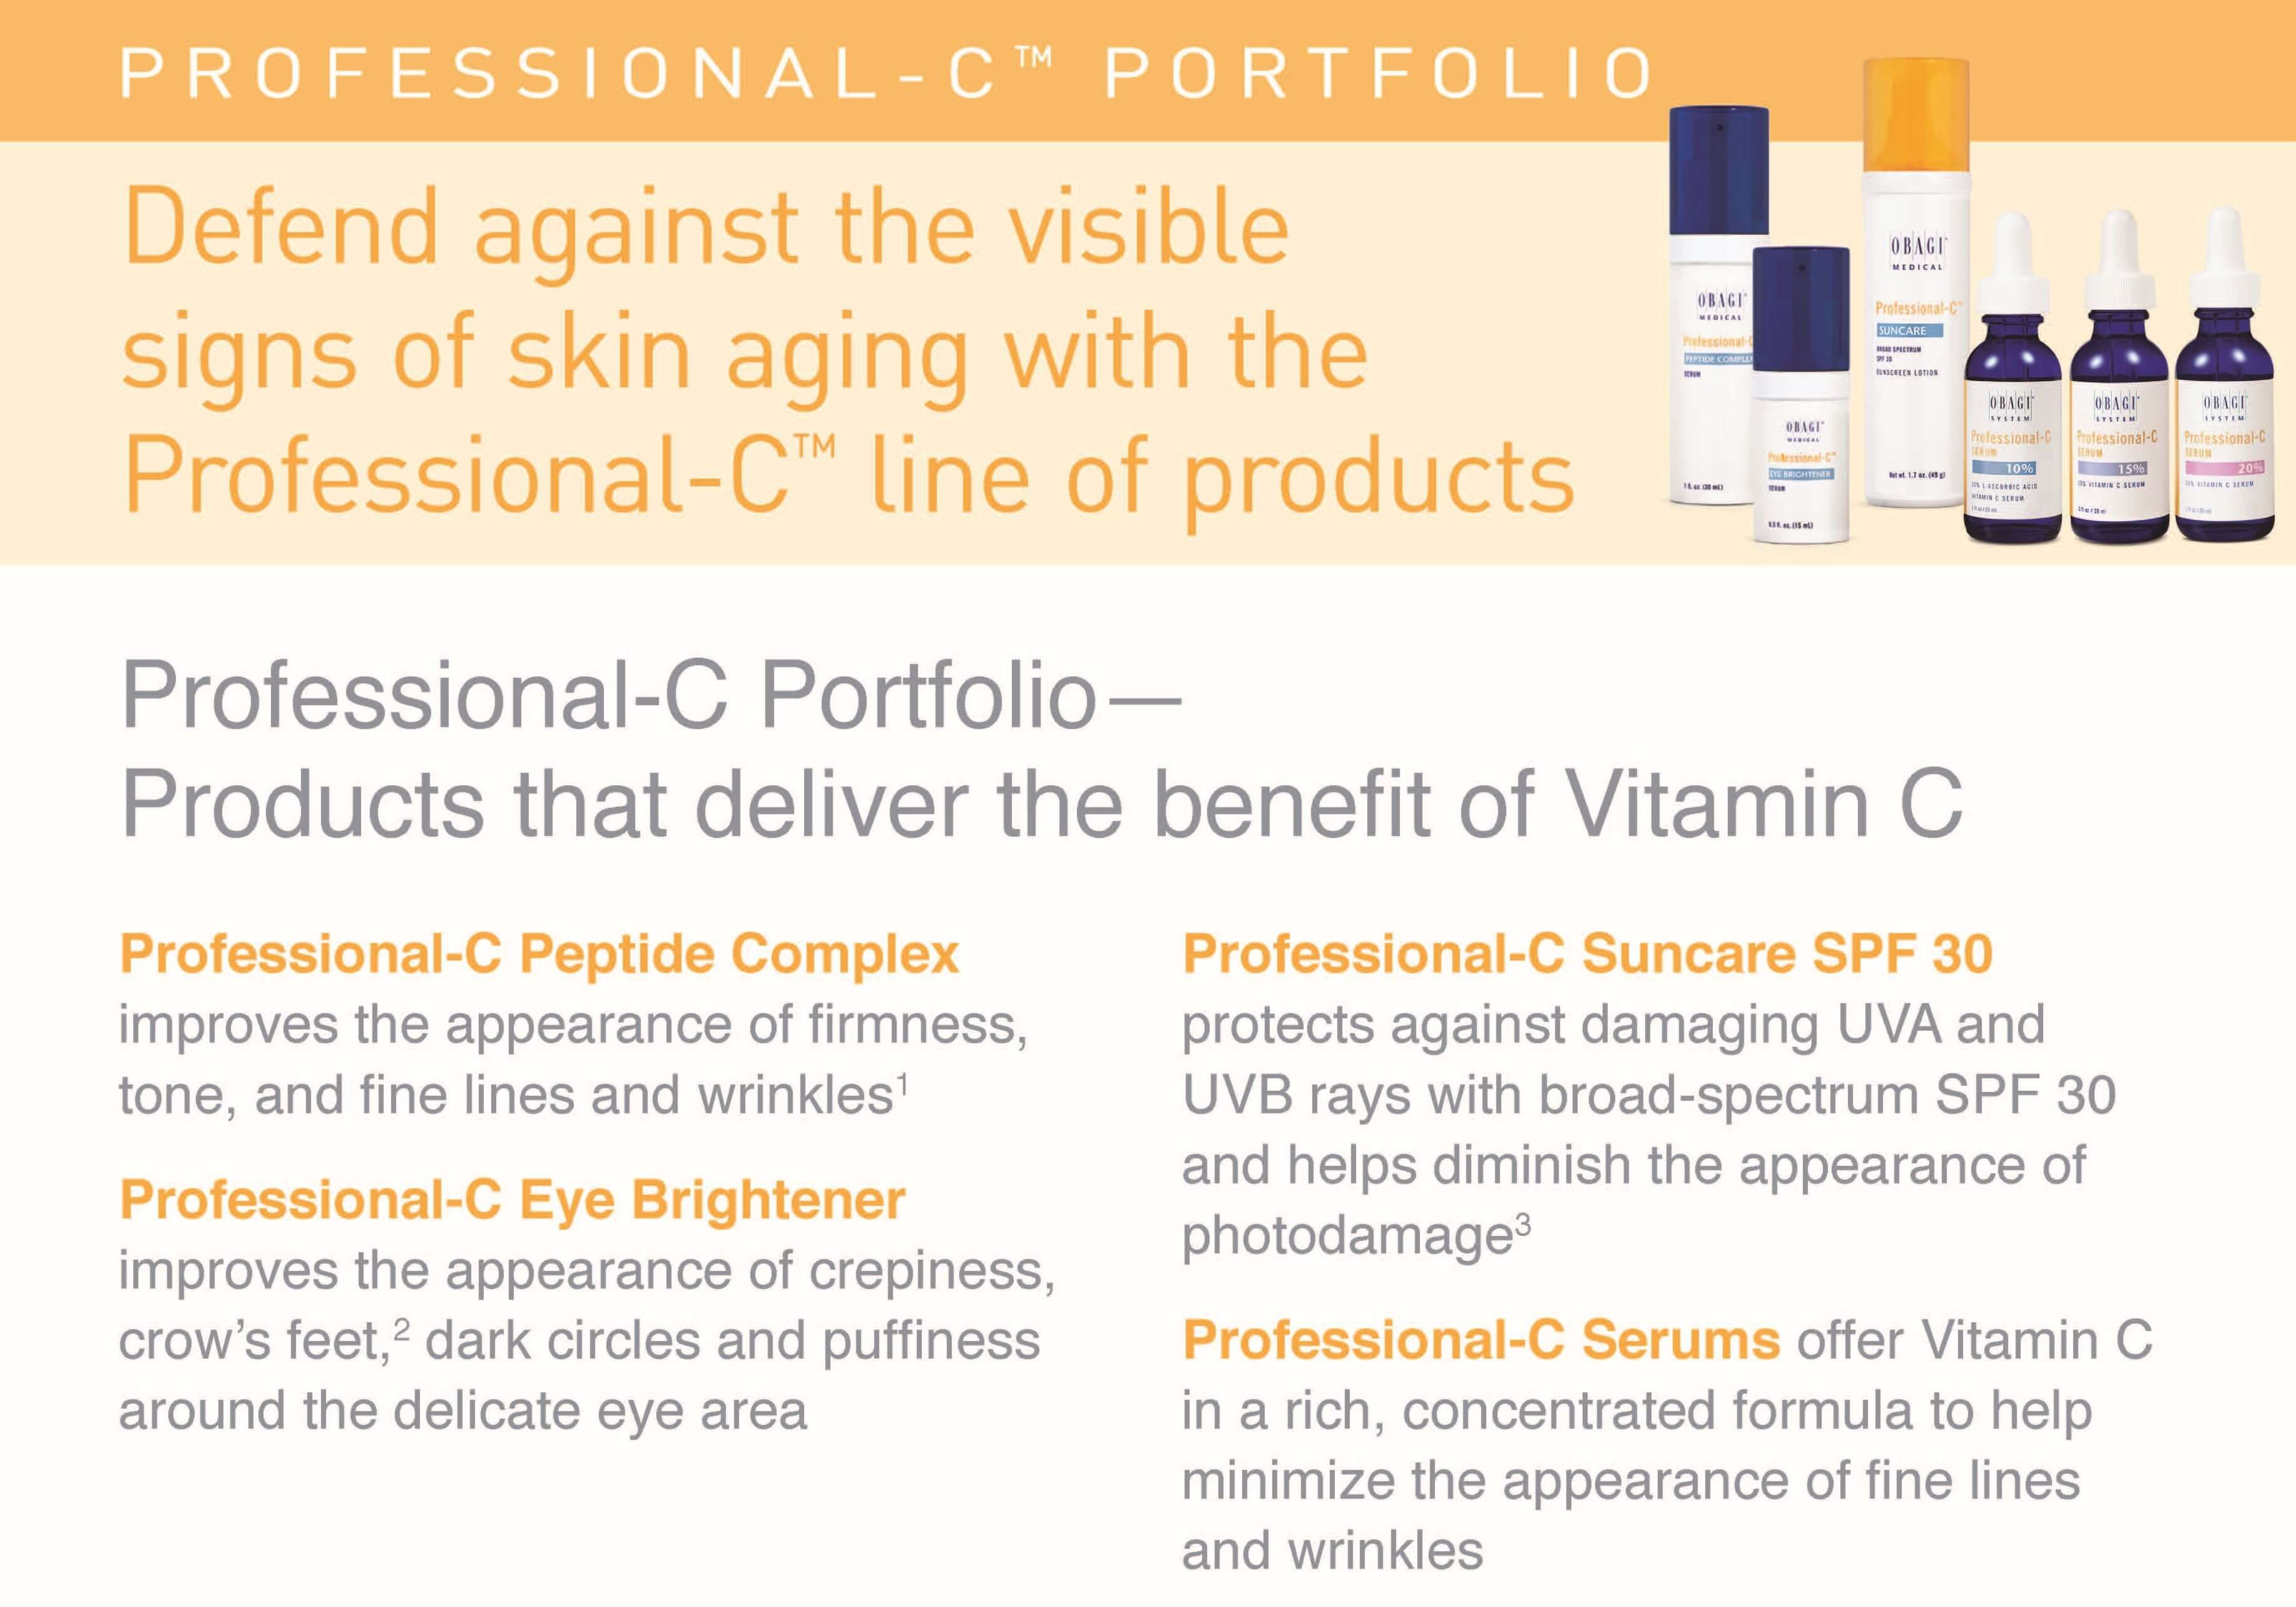 Obagi Professional C-Serums protect skin and minimize fine lines and wrinkles